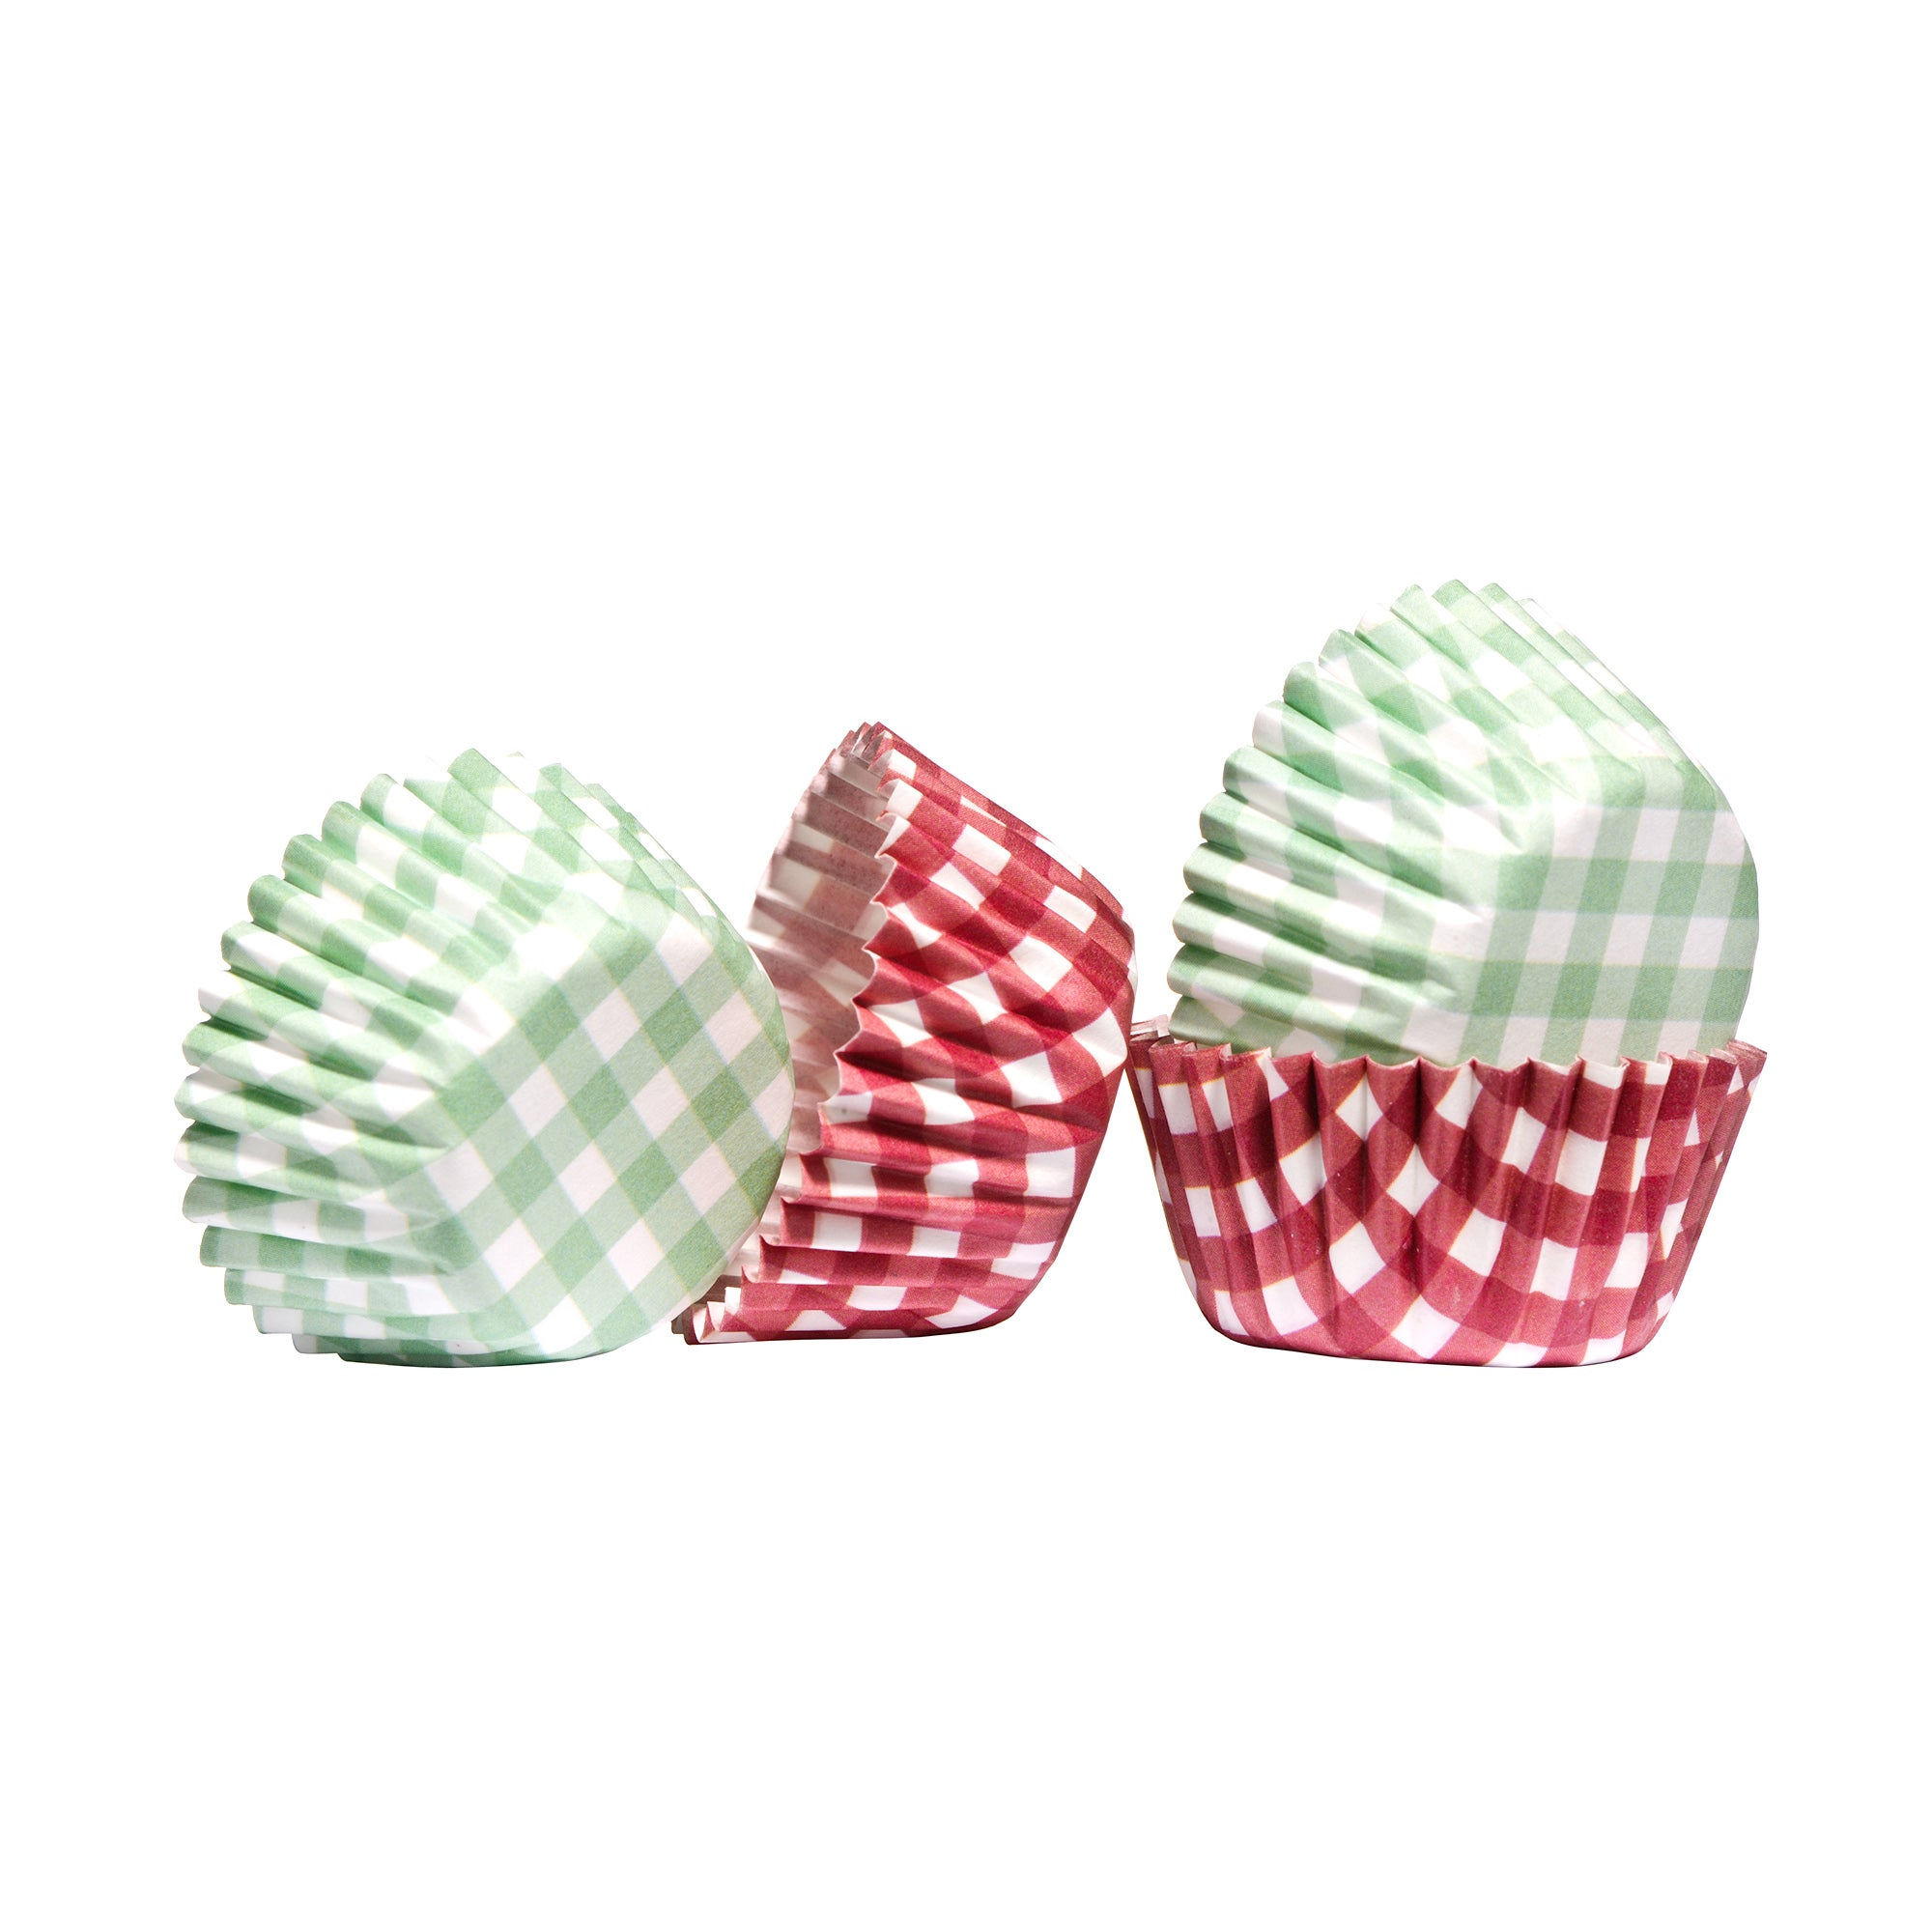 Pack of 100 Mini Gingham Cupcake Cases